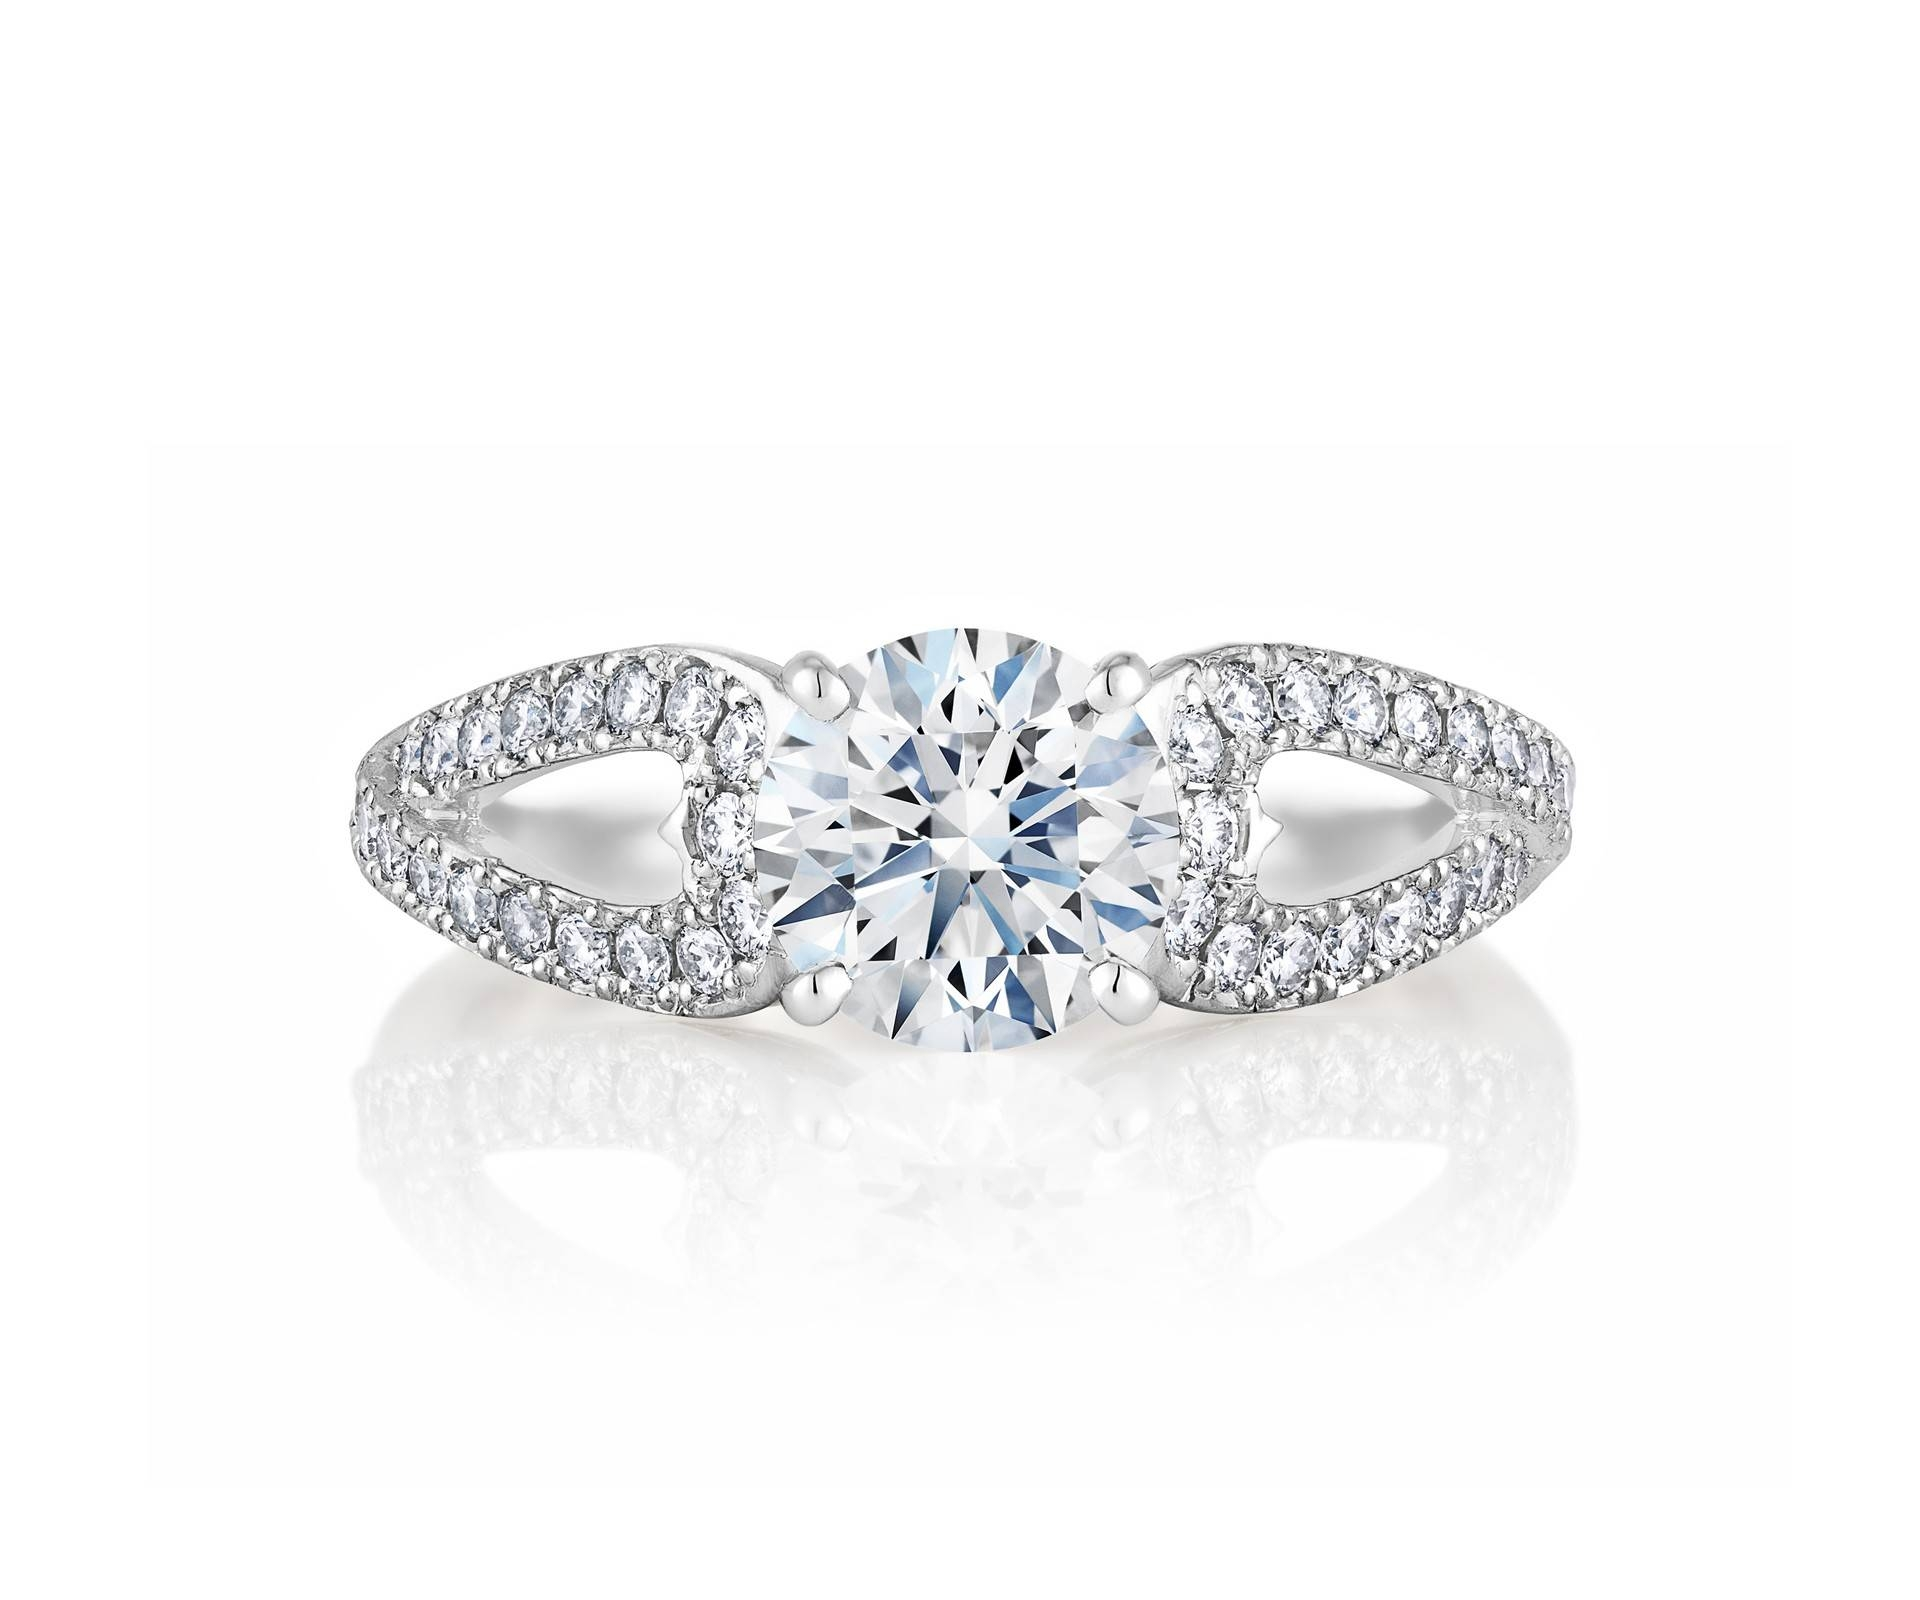 Diamond Engagement Rings & Promise Rings | De Beers Regarding Infinity Style Engagement Rings (View 7 of 15)